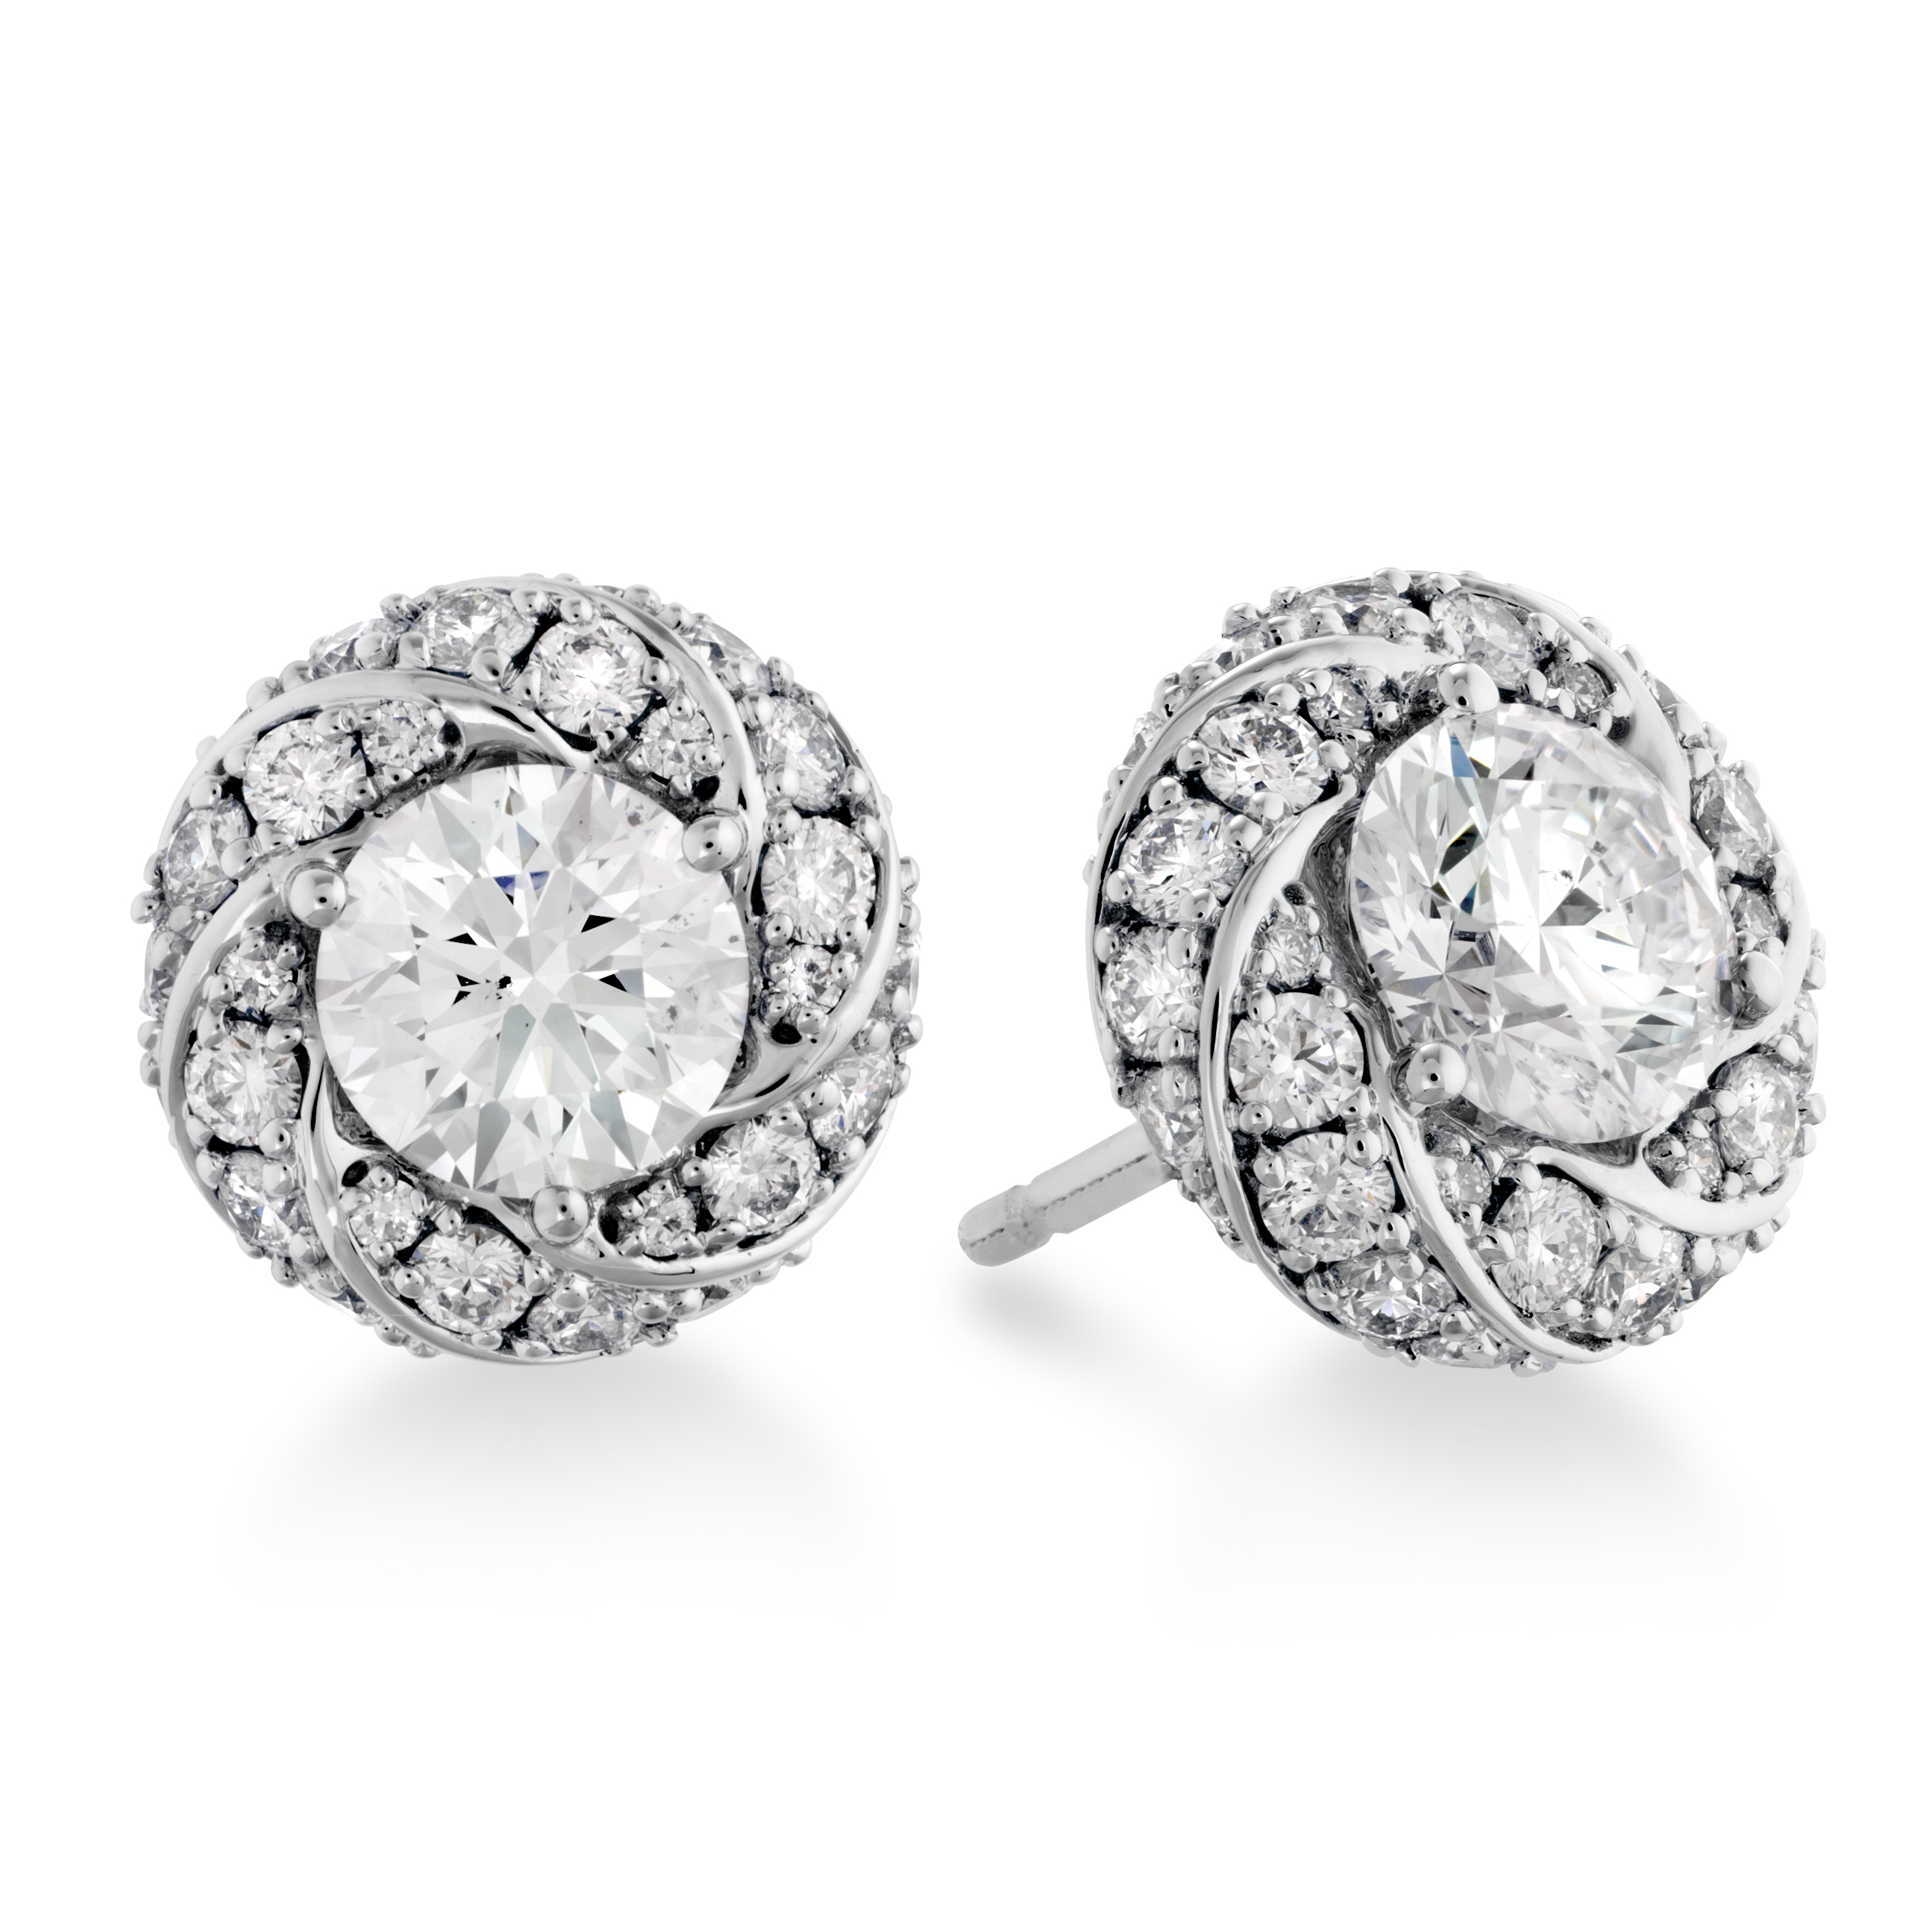 s fetheray stud diamond earrings antique ritzy cluster vintage retro products